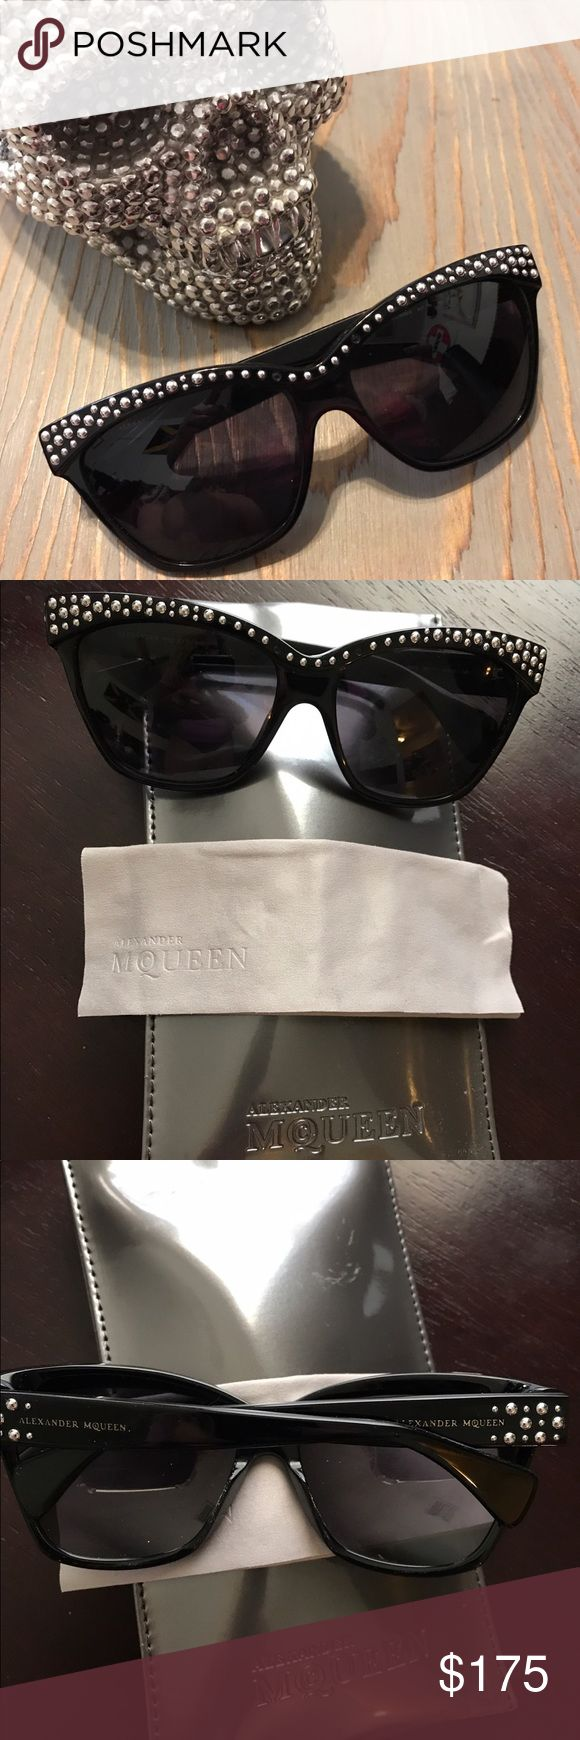 Alexander McQueen sunglasses 😎 Authentic in perfect condition comes with case & cleaning cloth. These are stunning 😎💜PRICE IS FIRM 🌹 Alexander McQueen Accessories Sunglasses